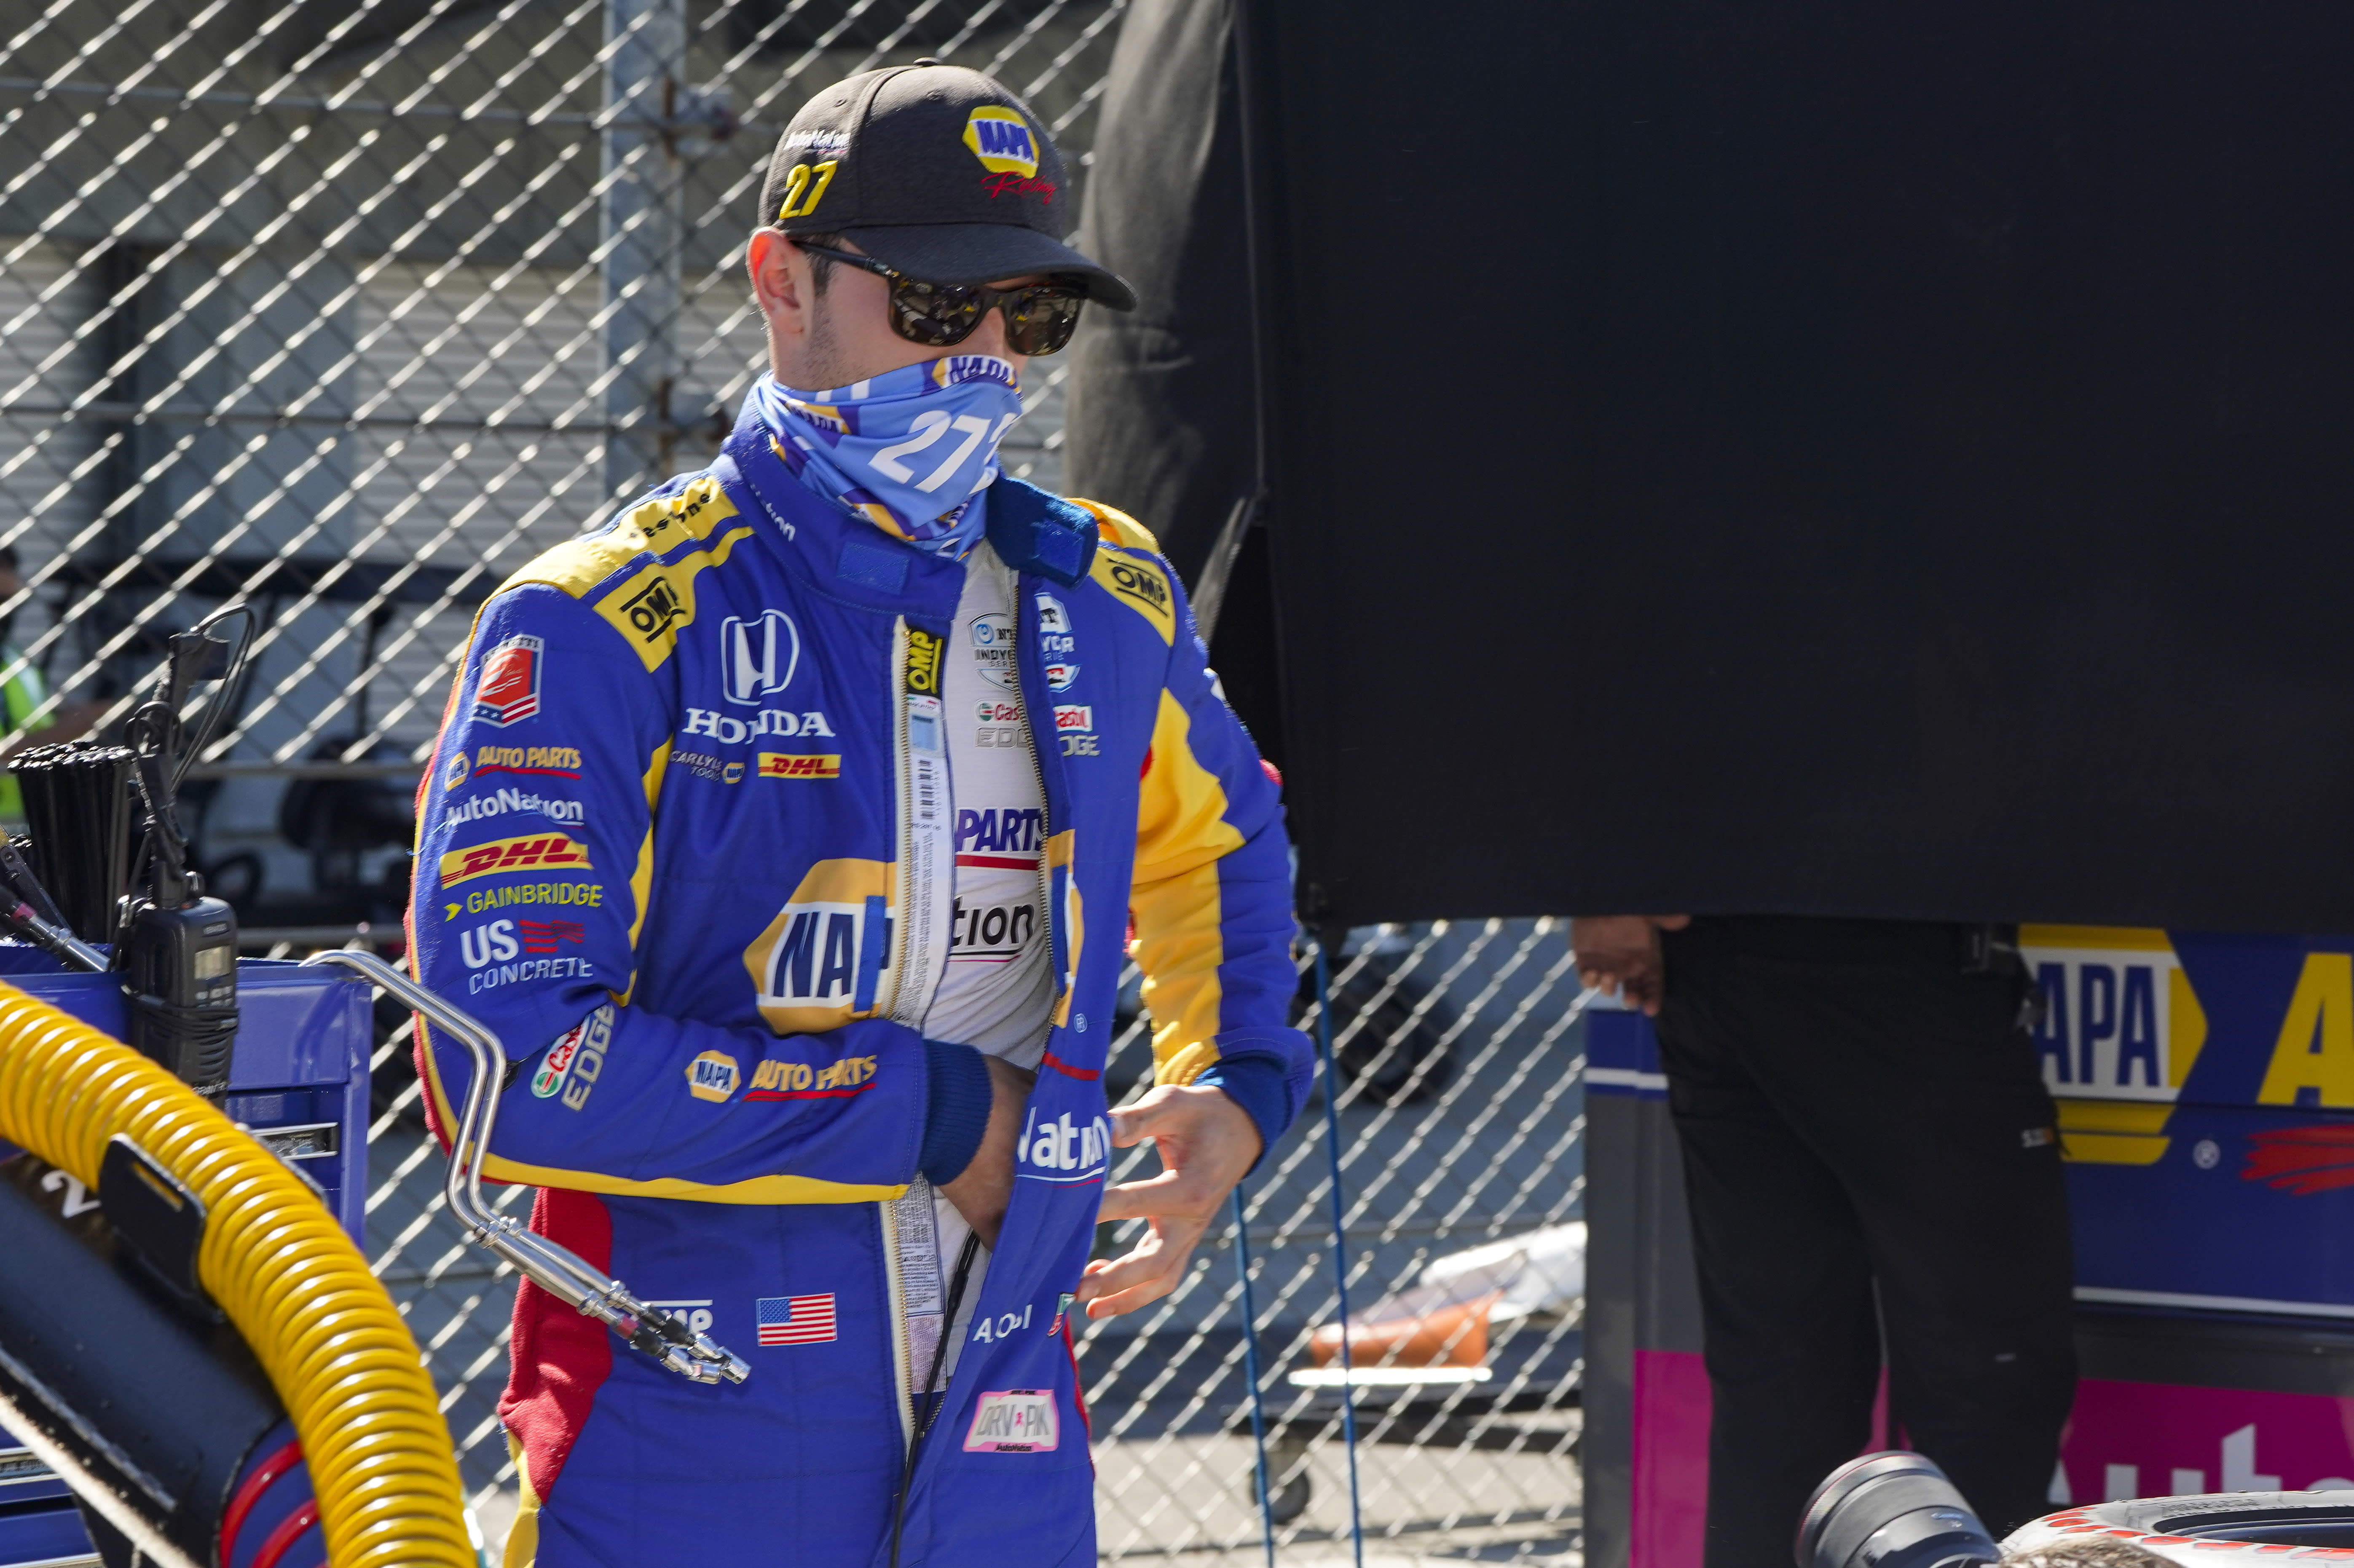 Alexander Rossi prepares to drive before practice for the Indianapolis 500 auto race at Indianapolis Motor Speedway in Indianapolis, Friday, Aug. 21, 2020. The 104th running of the Indianapolis 500 auto race is scheduled to run on Sunday. (AP Photo/Michael Conroy)